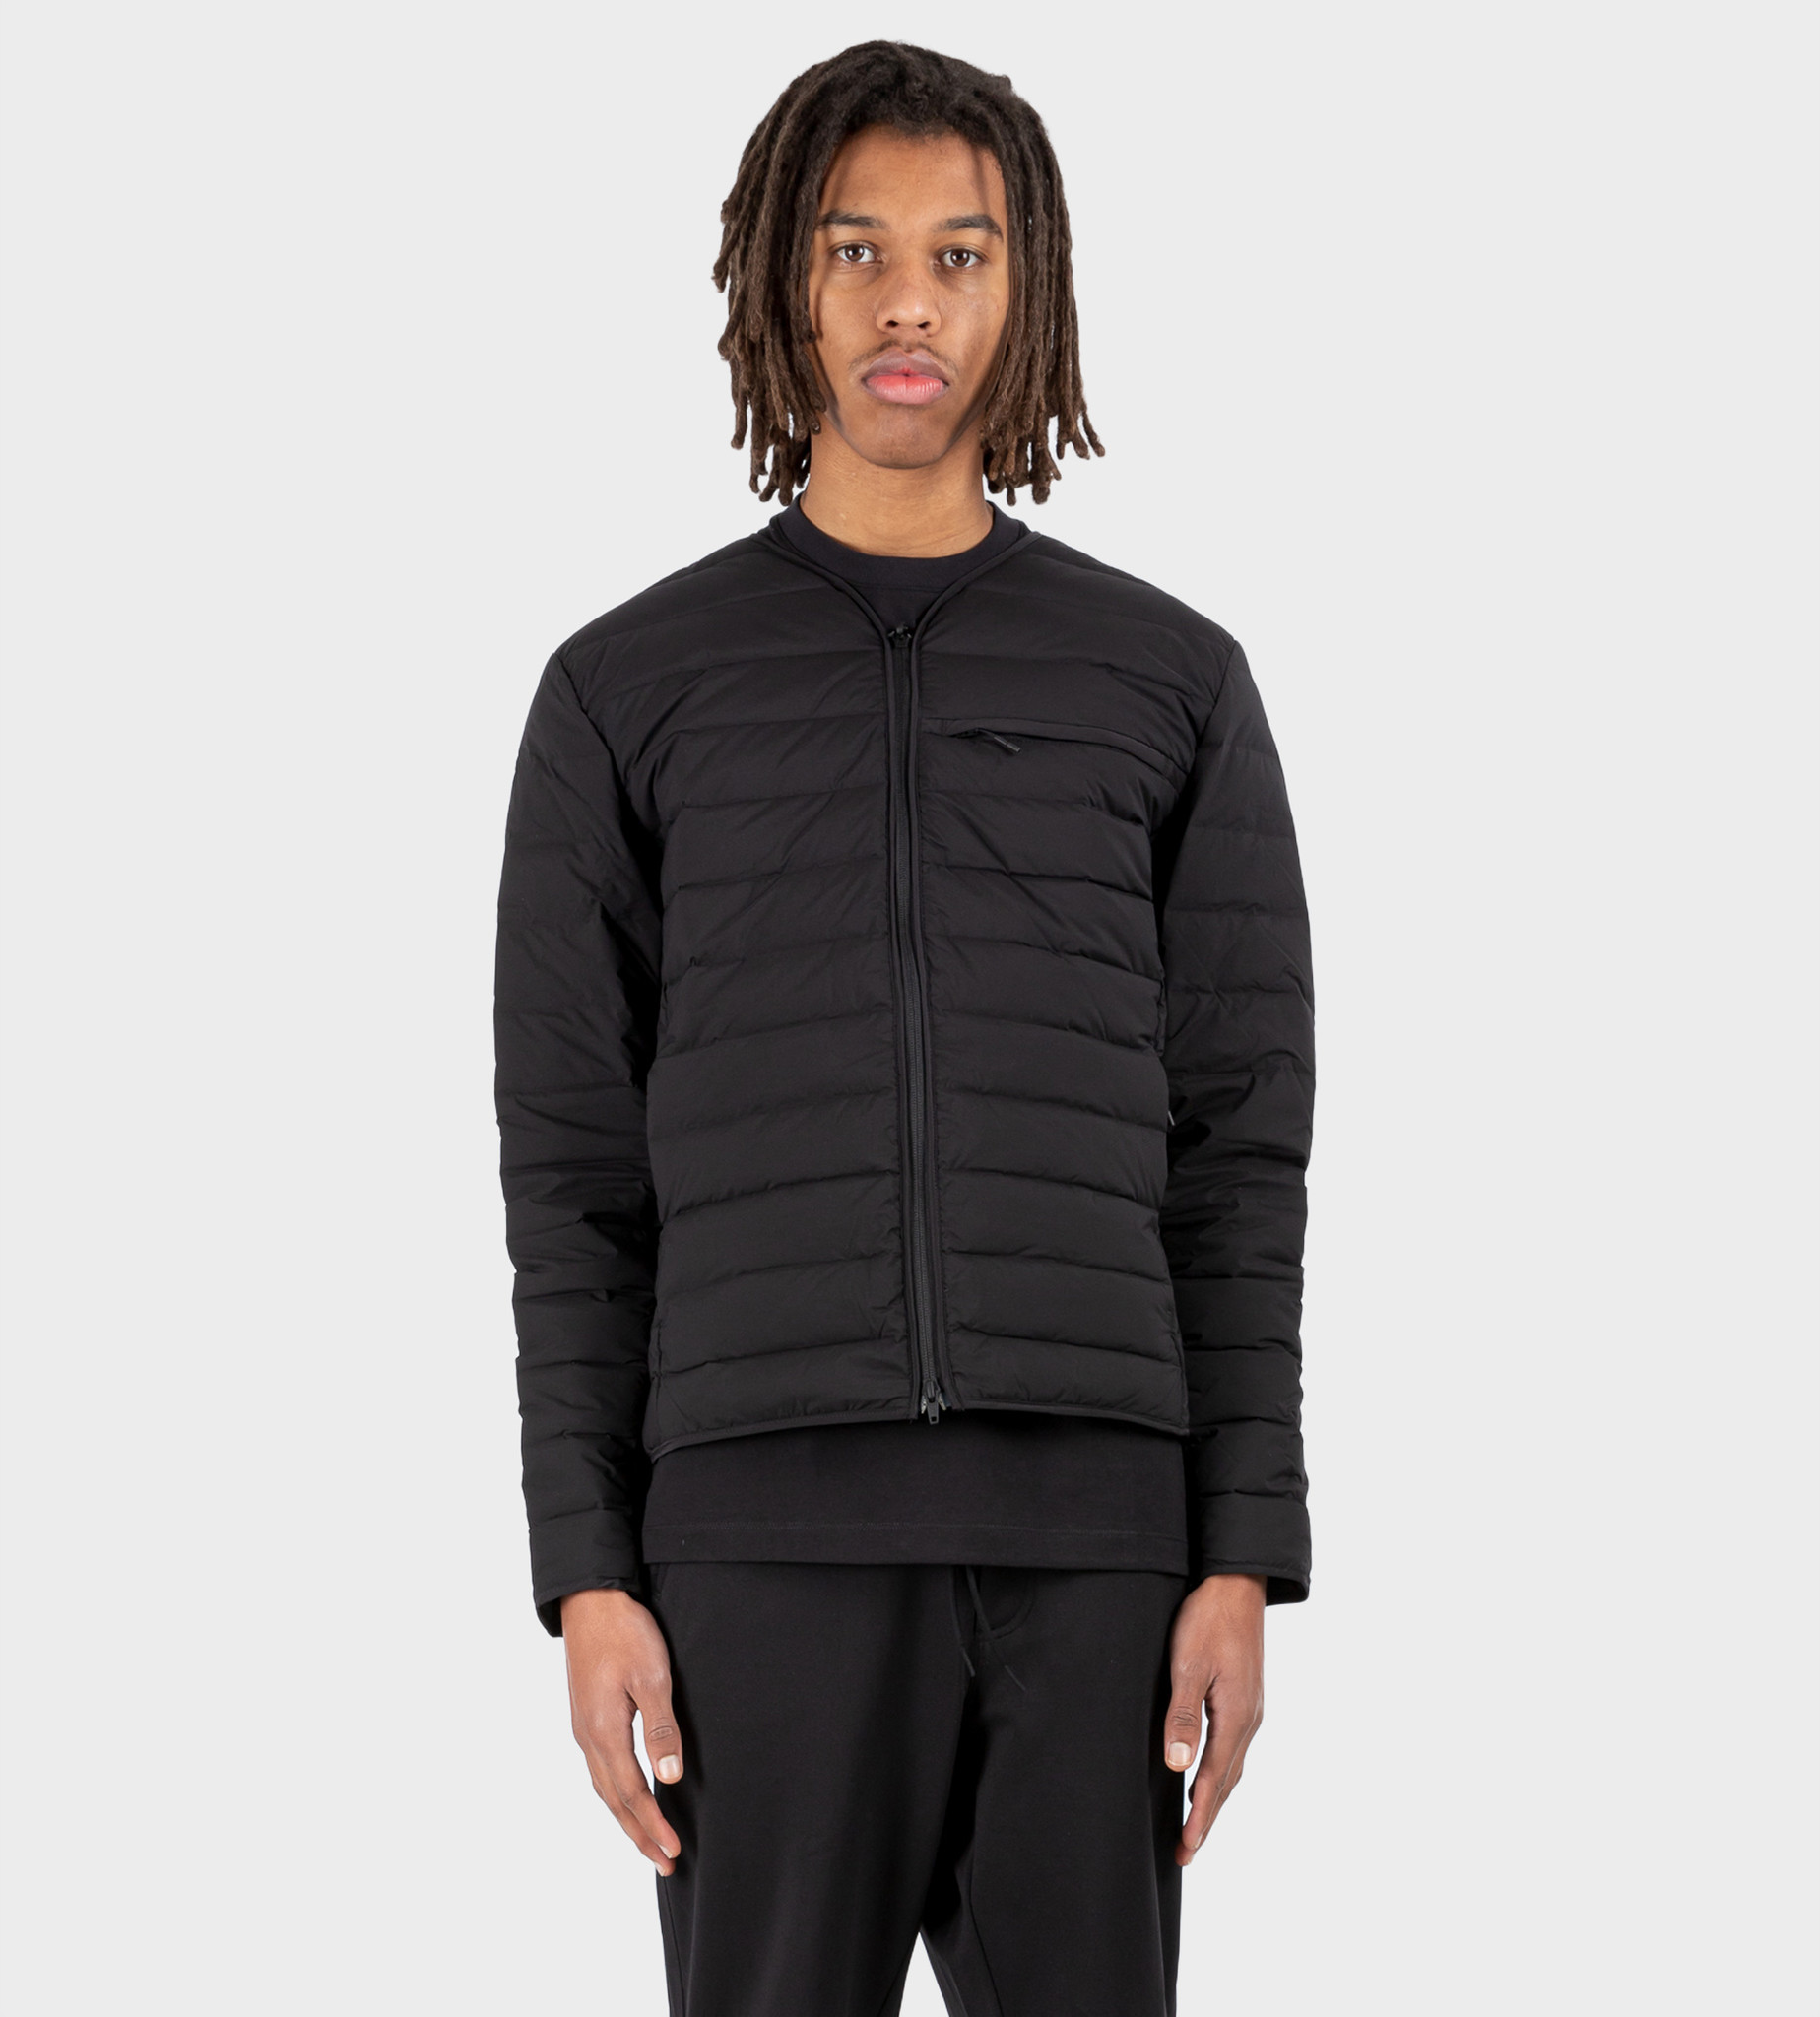 Y3 Classic Light Down Liner Jacket